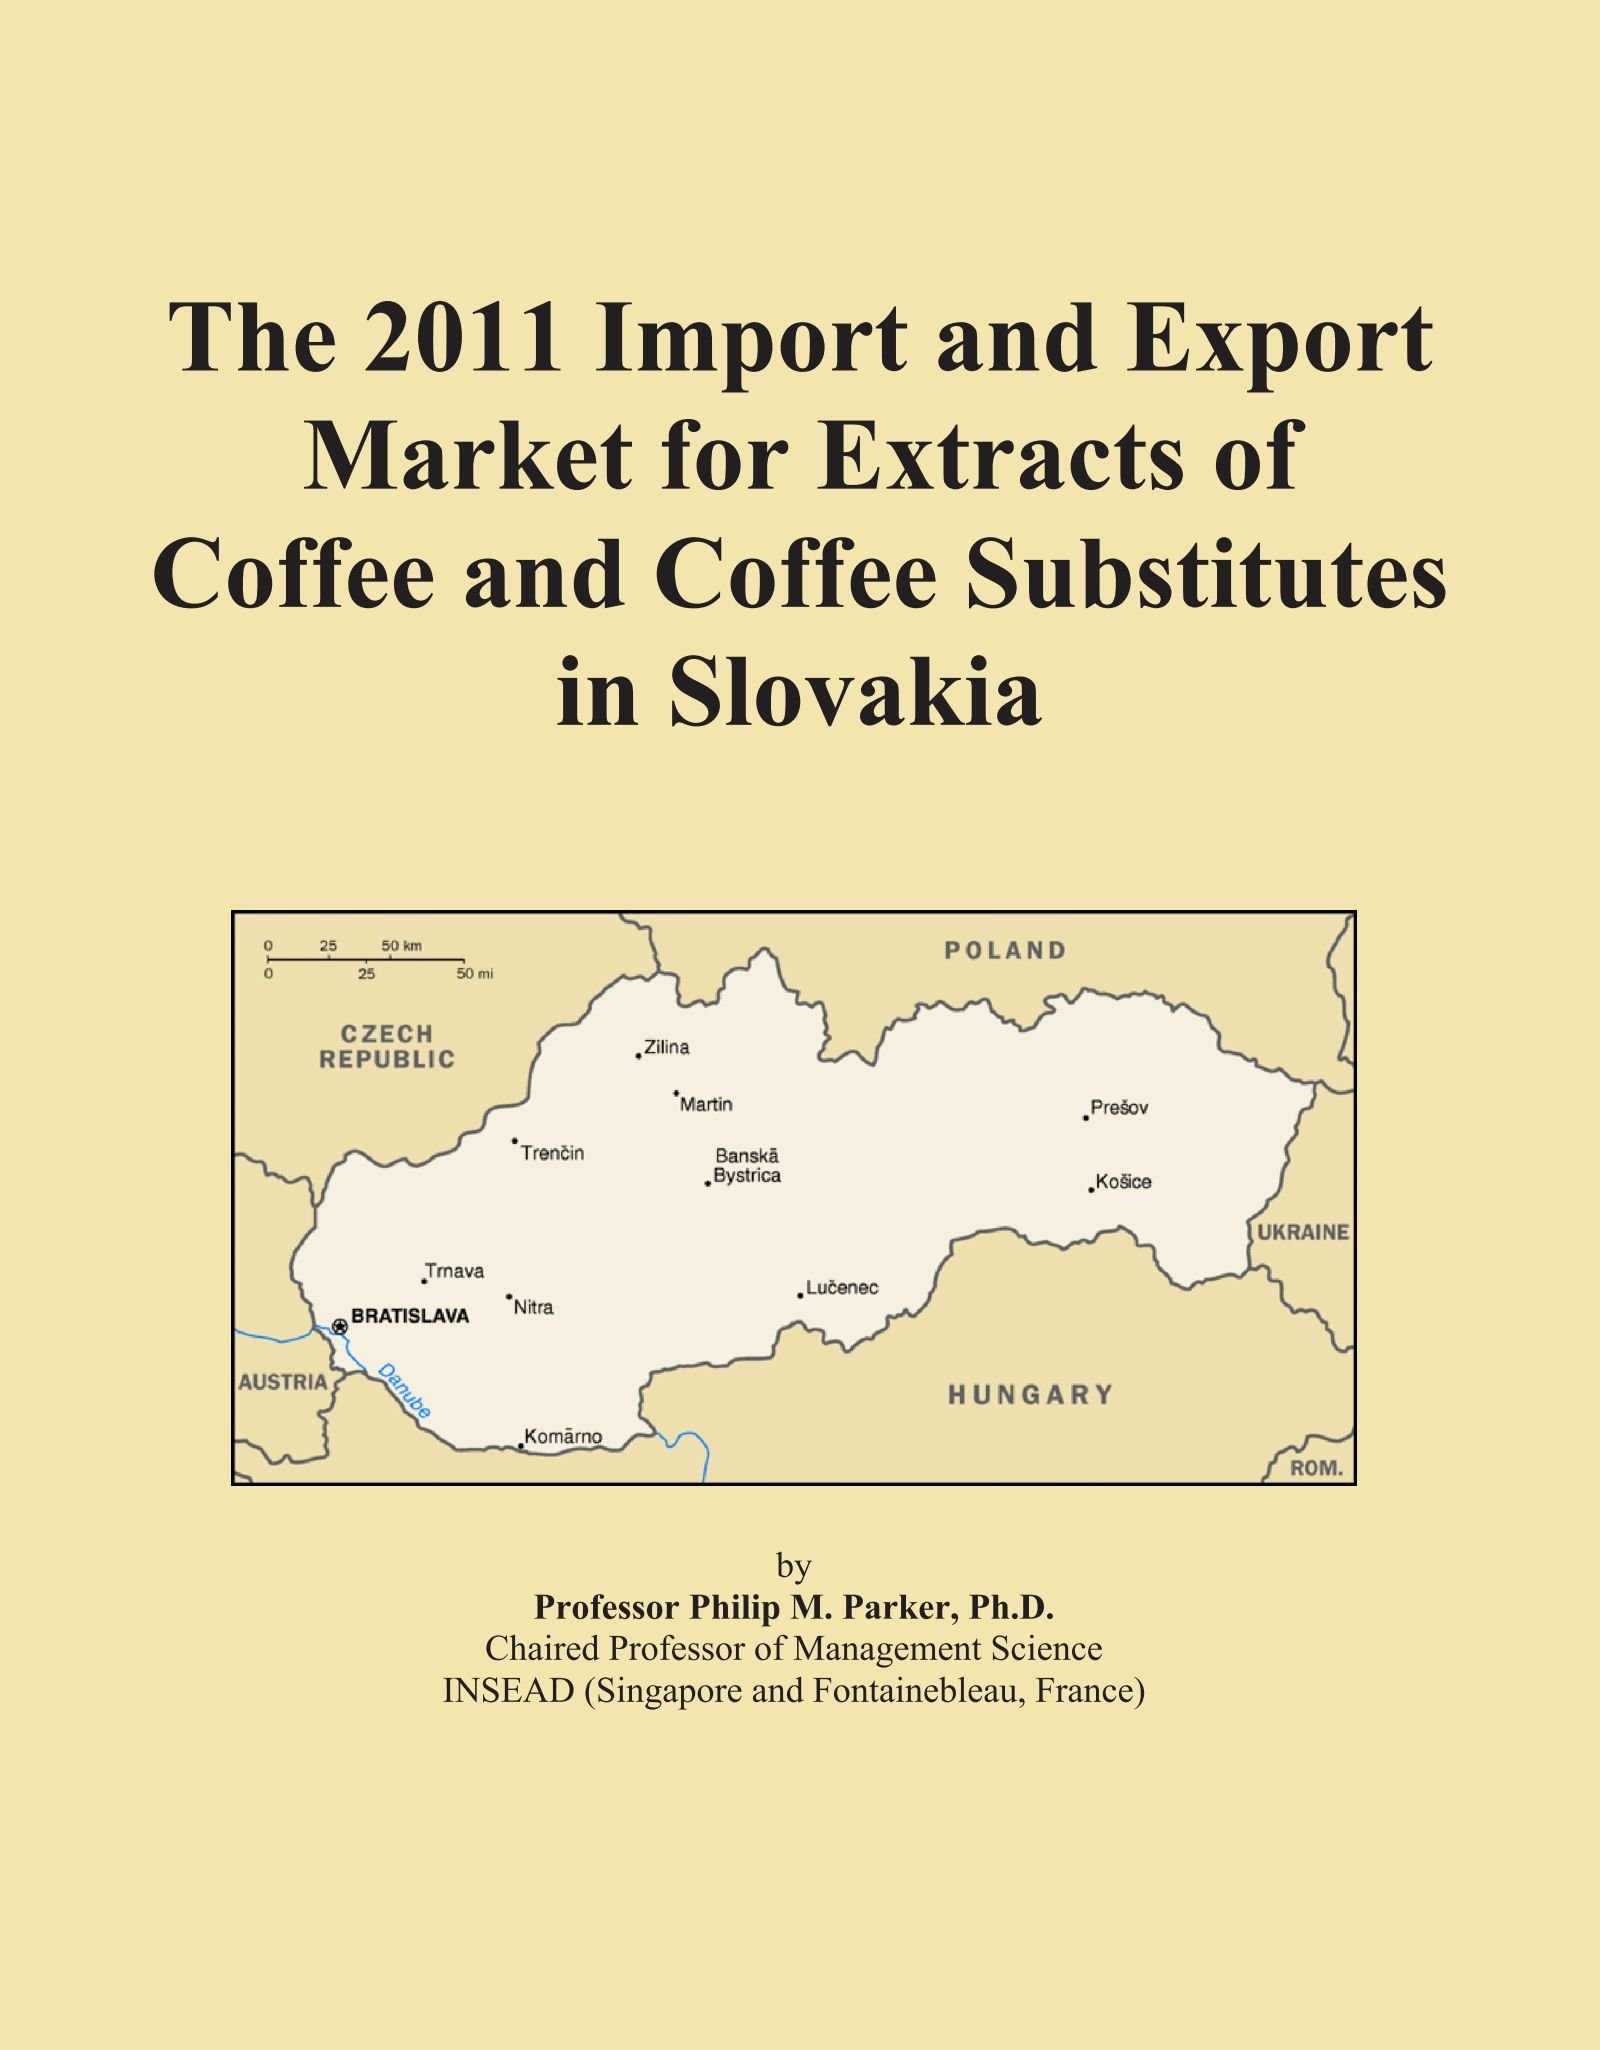 The 2011 Import and Export Market for Extracts of Coffee and Coffee Substitutes in Slovakia pdf